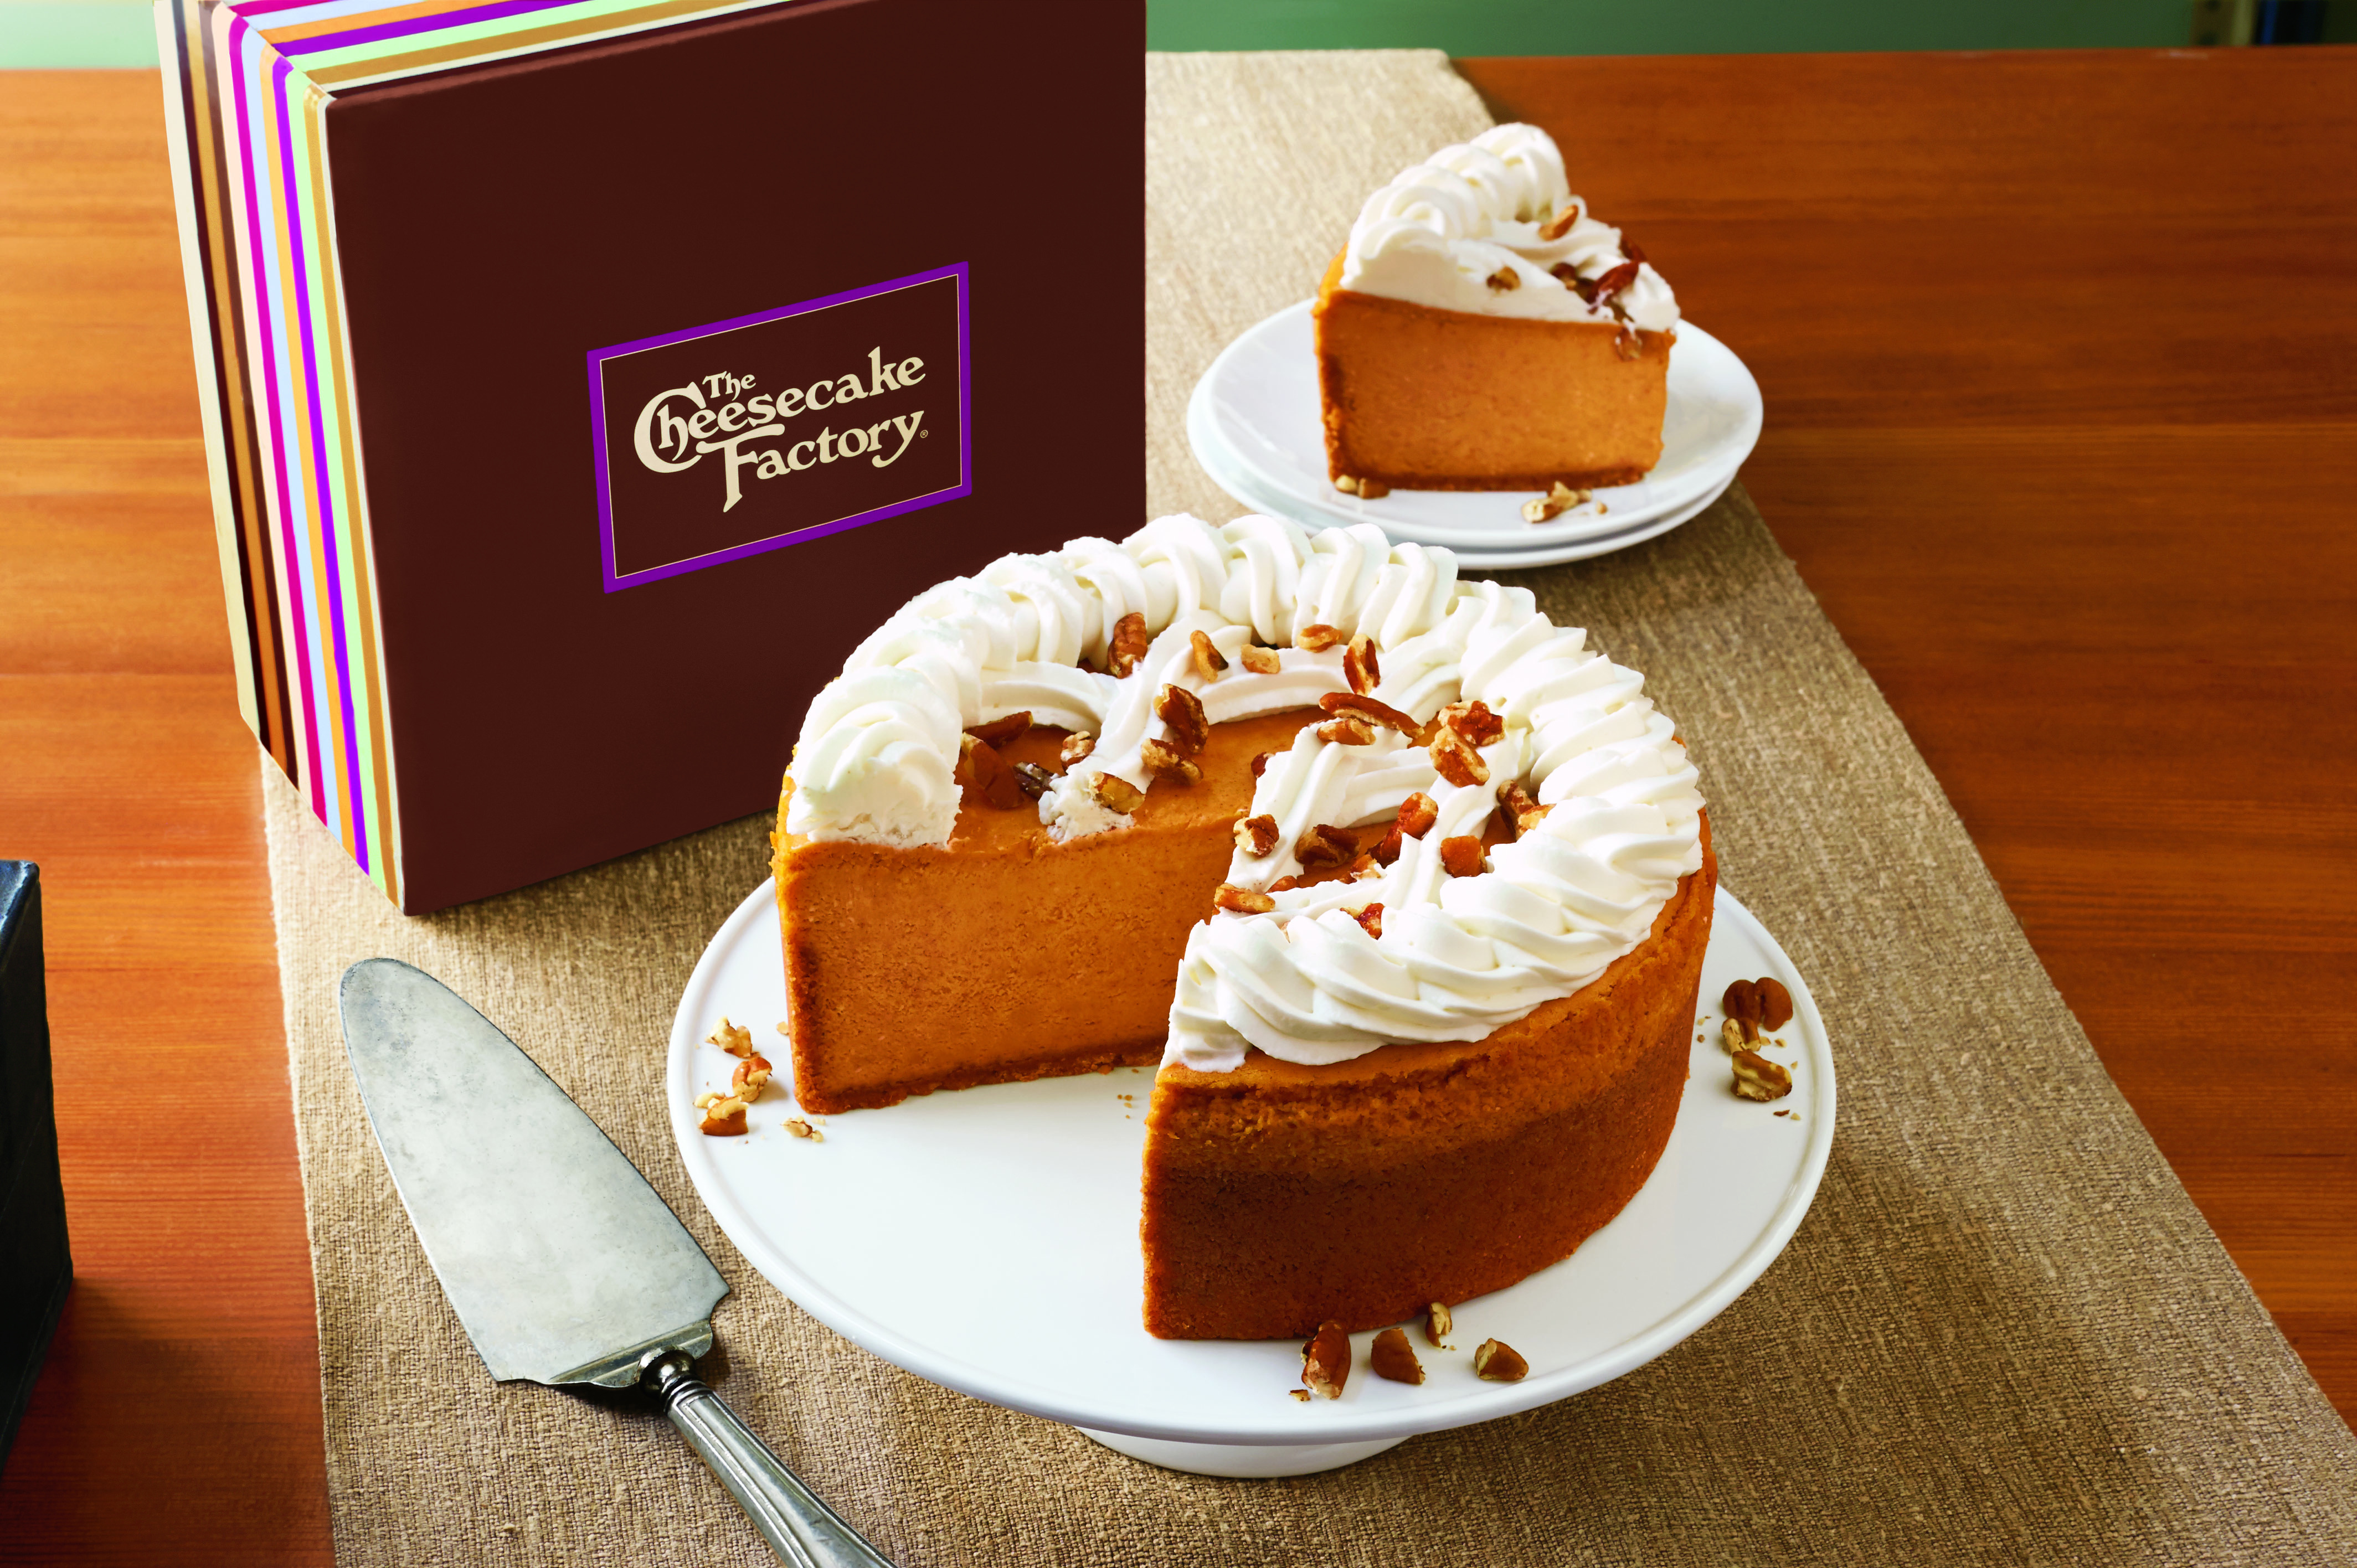 Harry David Now Delivering The Cheesecake Factory R Cheesecakes Direct To The Doorstep